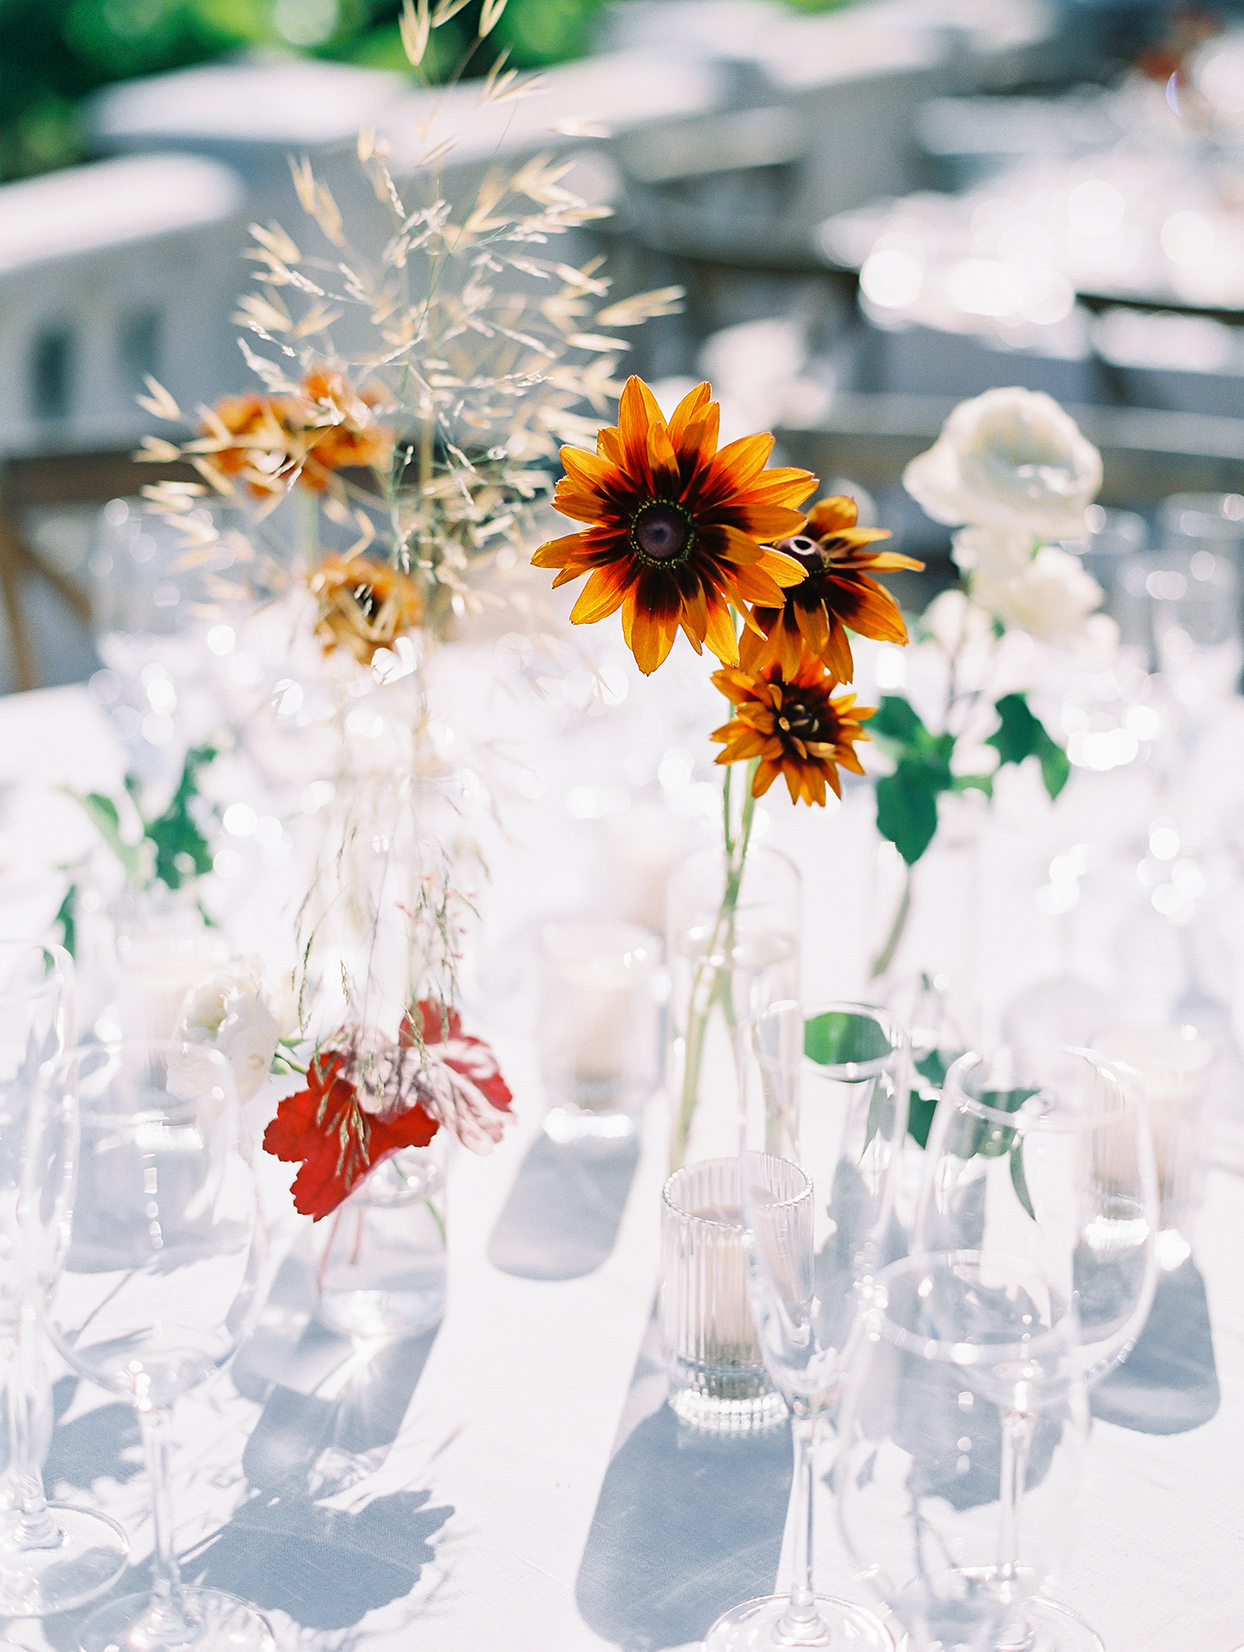 clear glass rehearsal dinner centerpieces with orange flowers